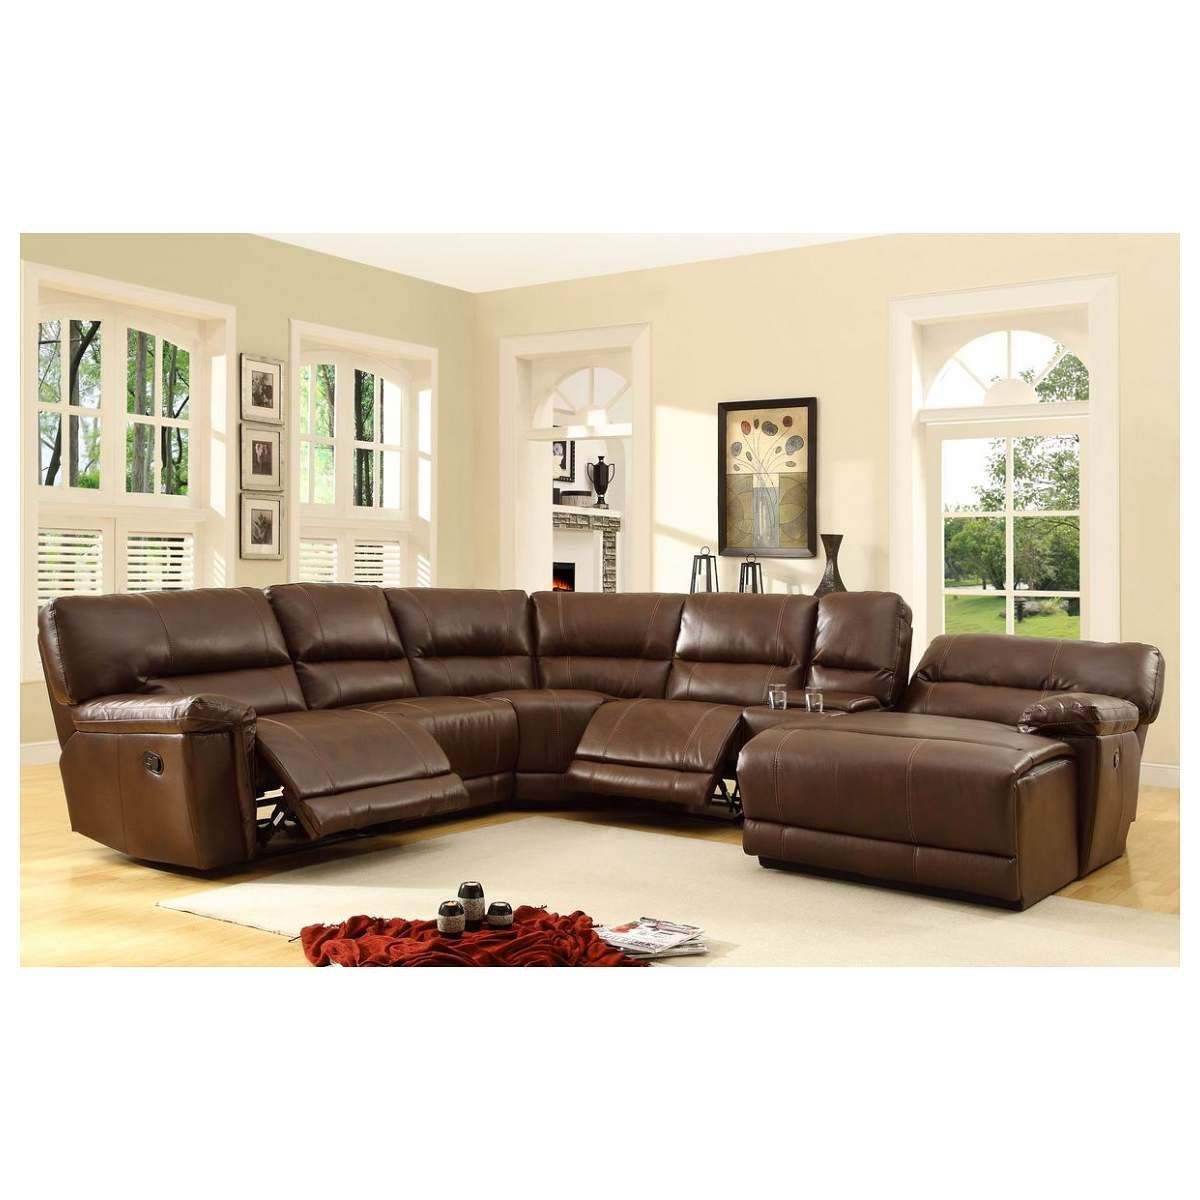 leather recliner sectional sofa montgomery ashley furniture 6 pc blythe collection brown bonded match